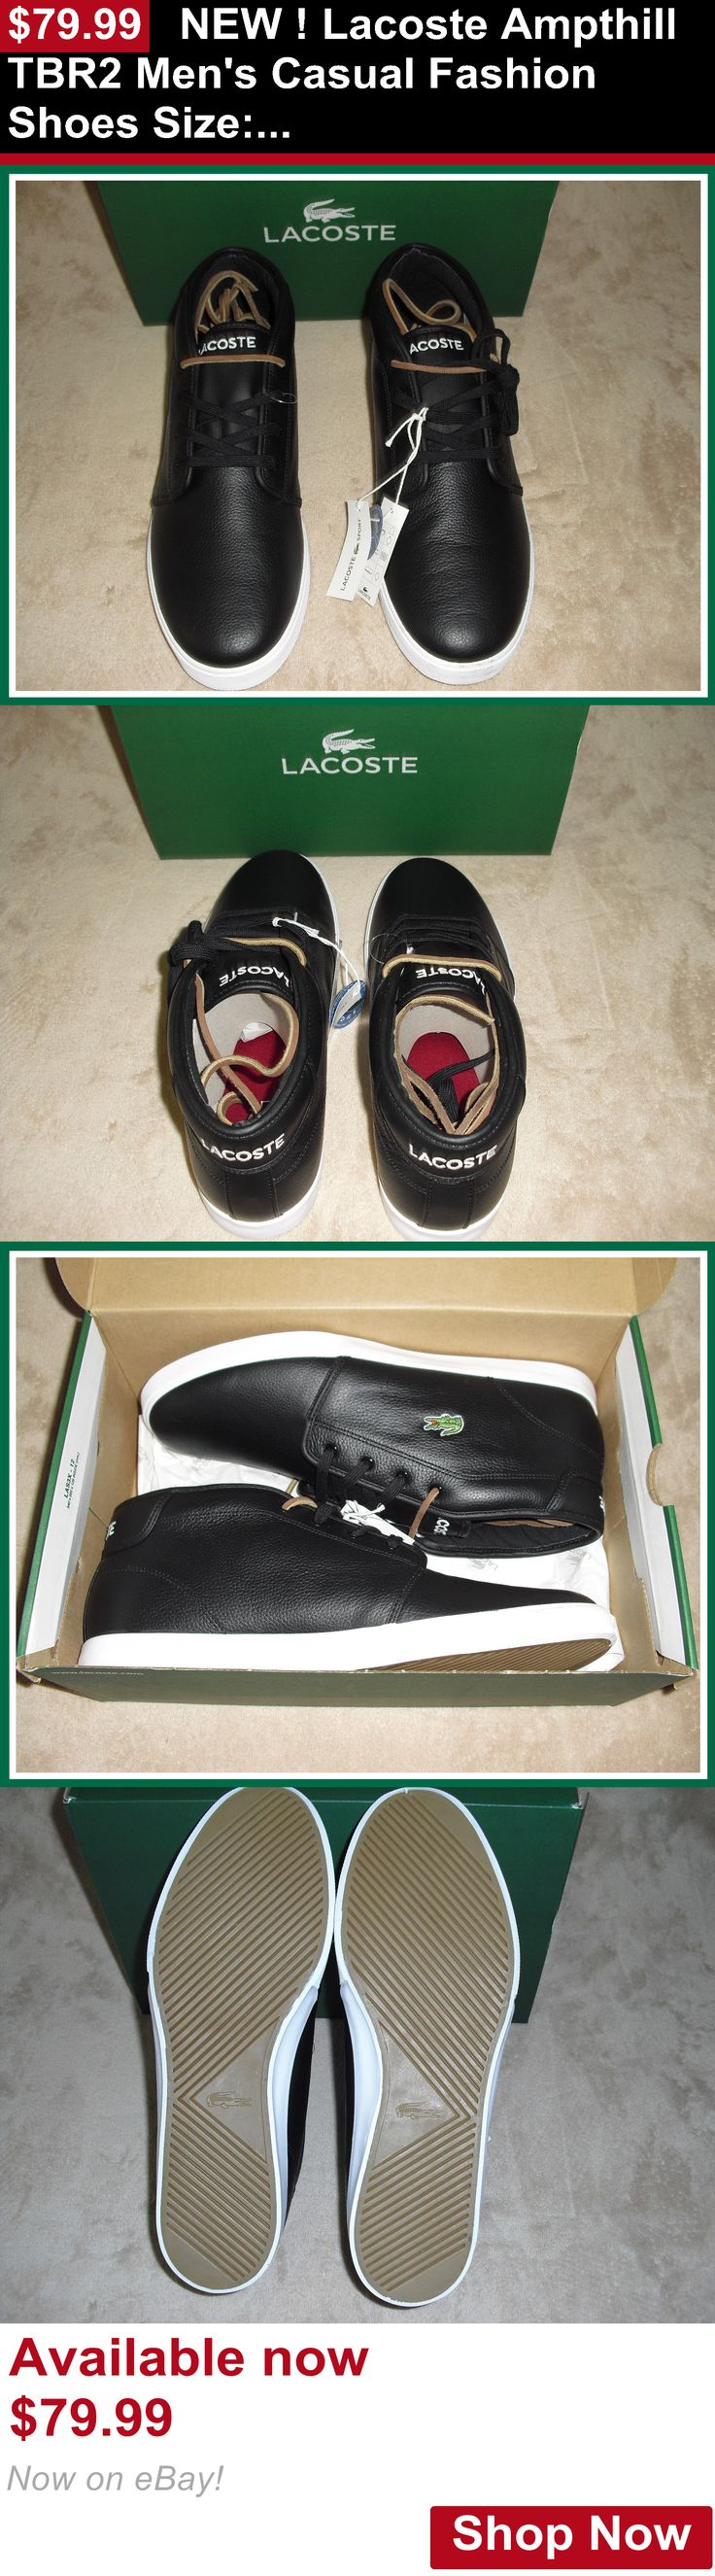 Men shoes: New ! Lacoste Ampthill Tbr2 Mens Casual Fashion Shoes Size:13 BUY IT NOW ONLY: $79.99